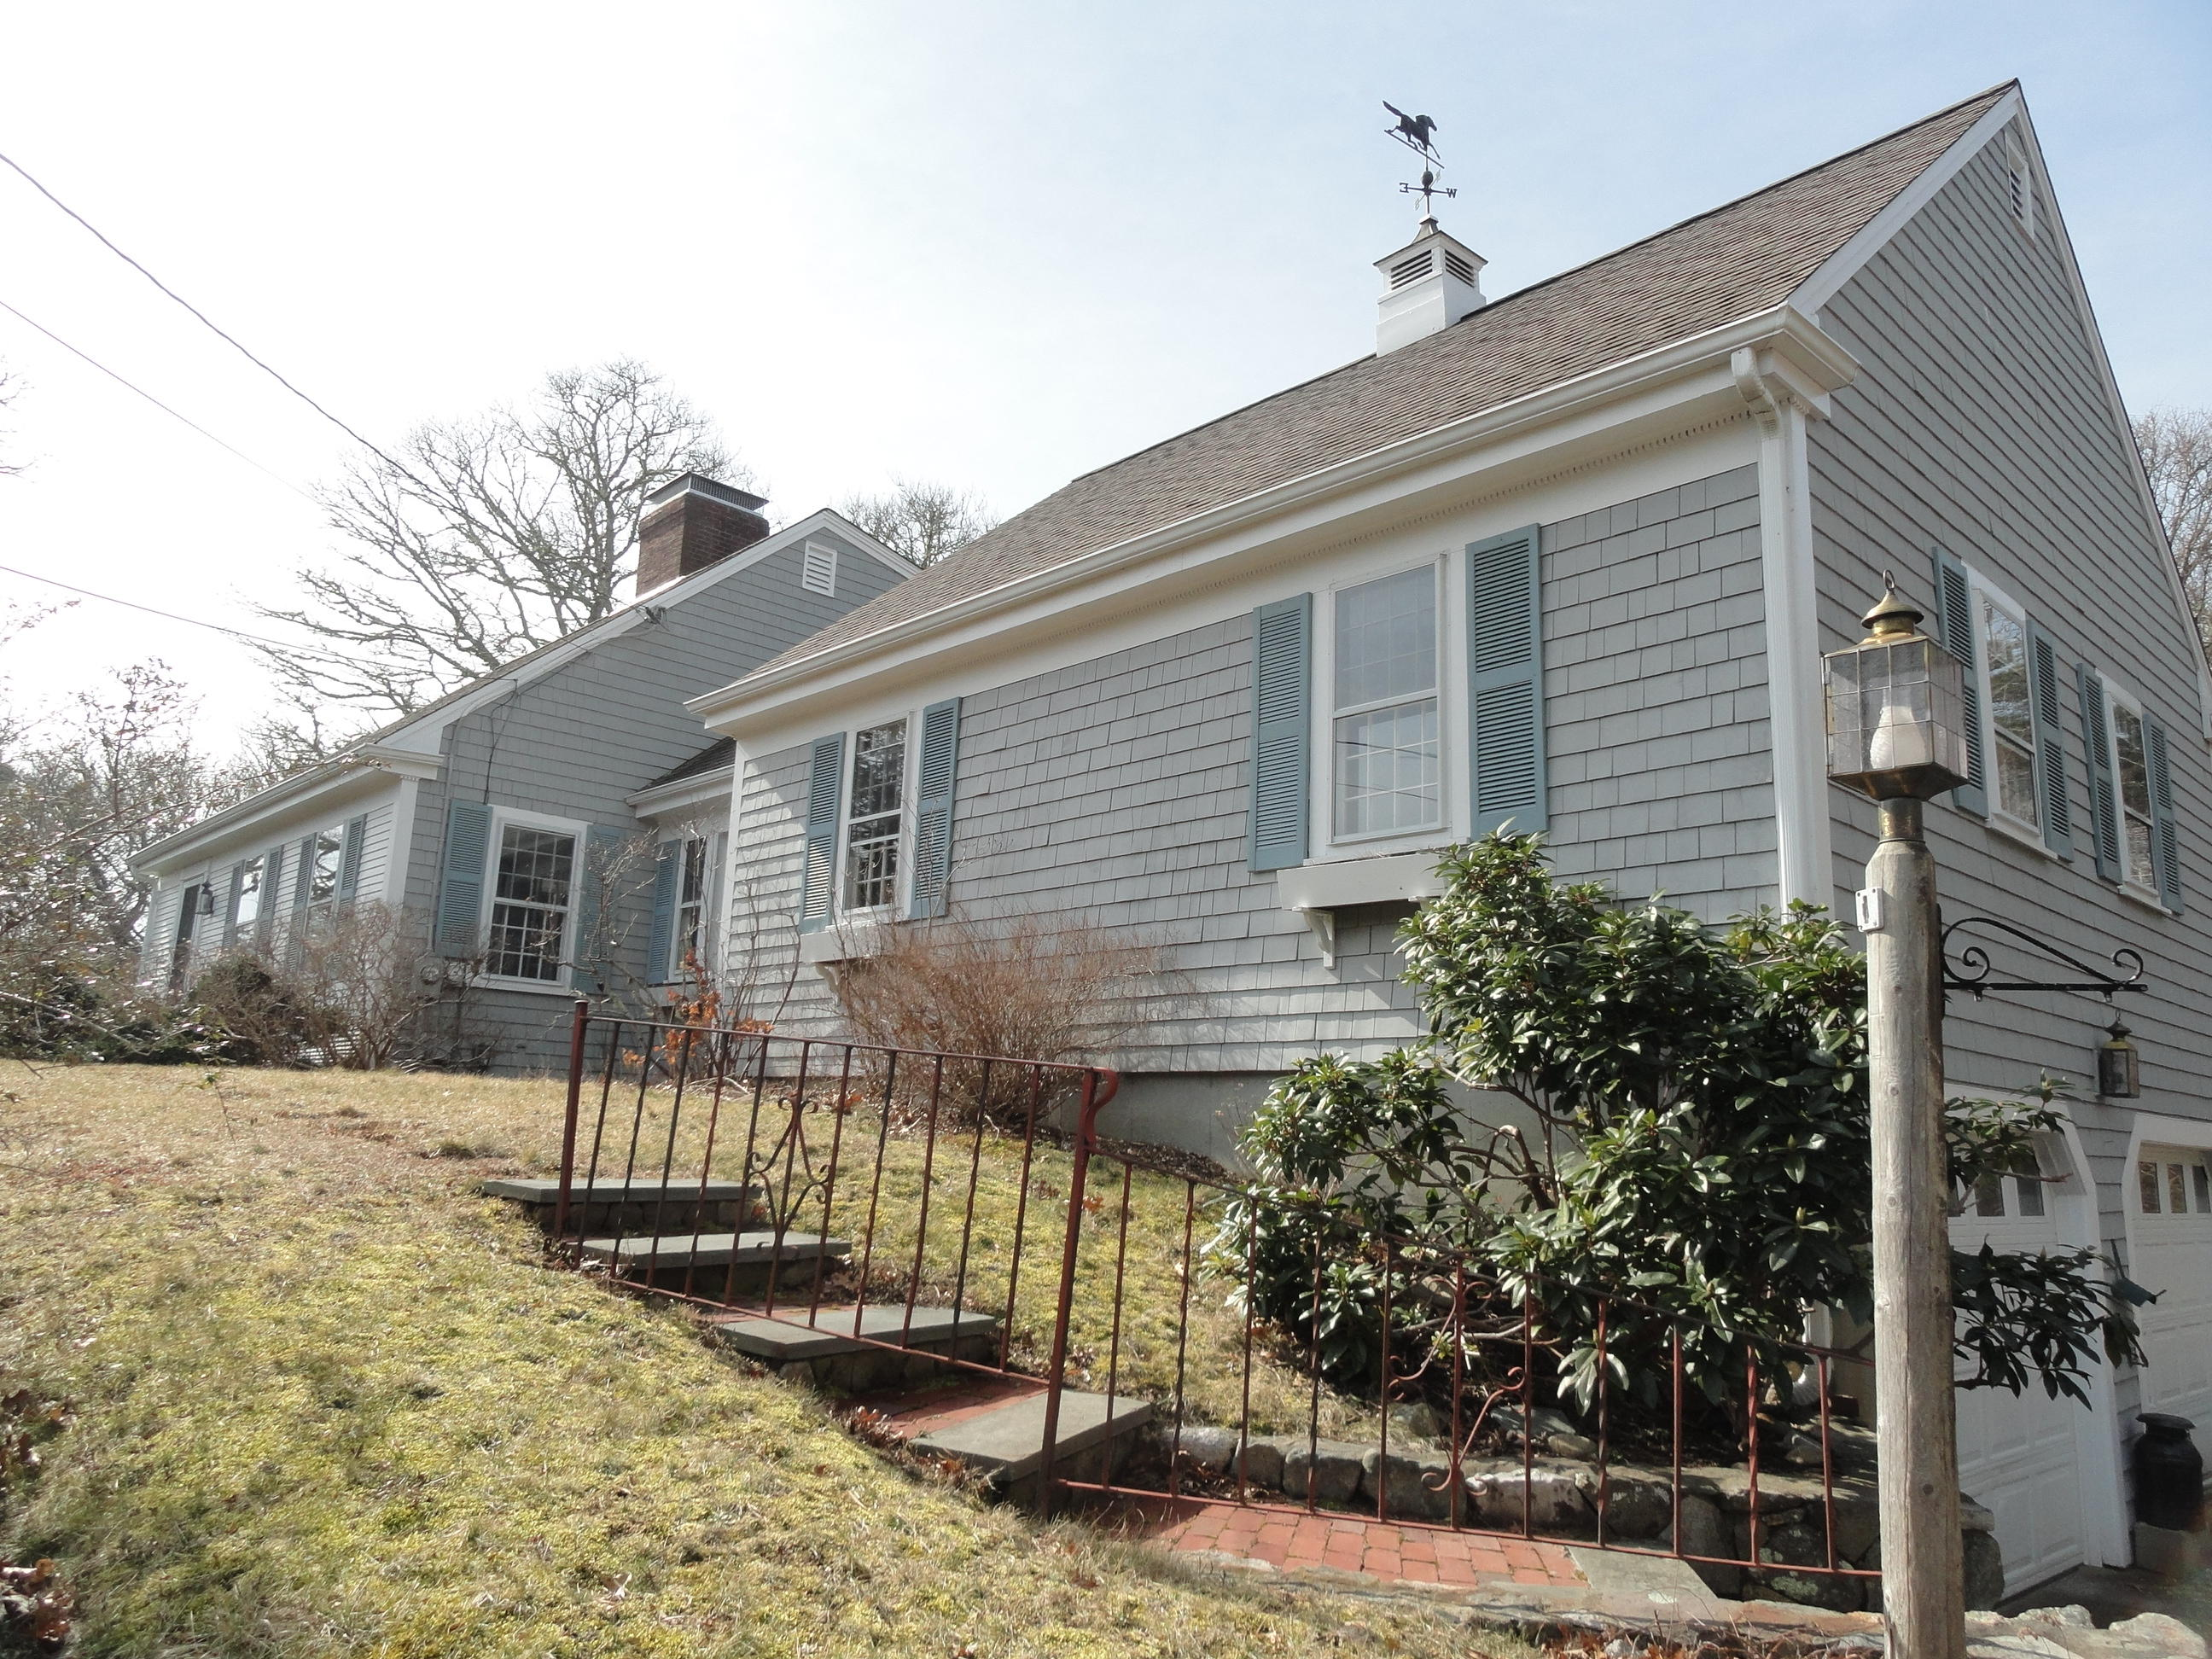 49 Winslow Drive, Orleans MA, 02653